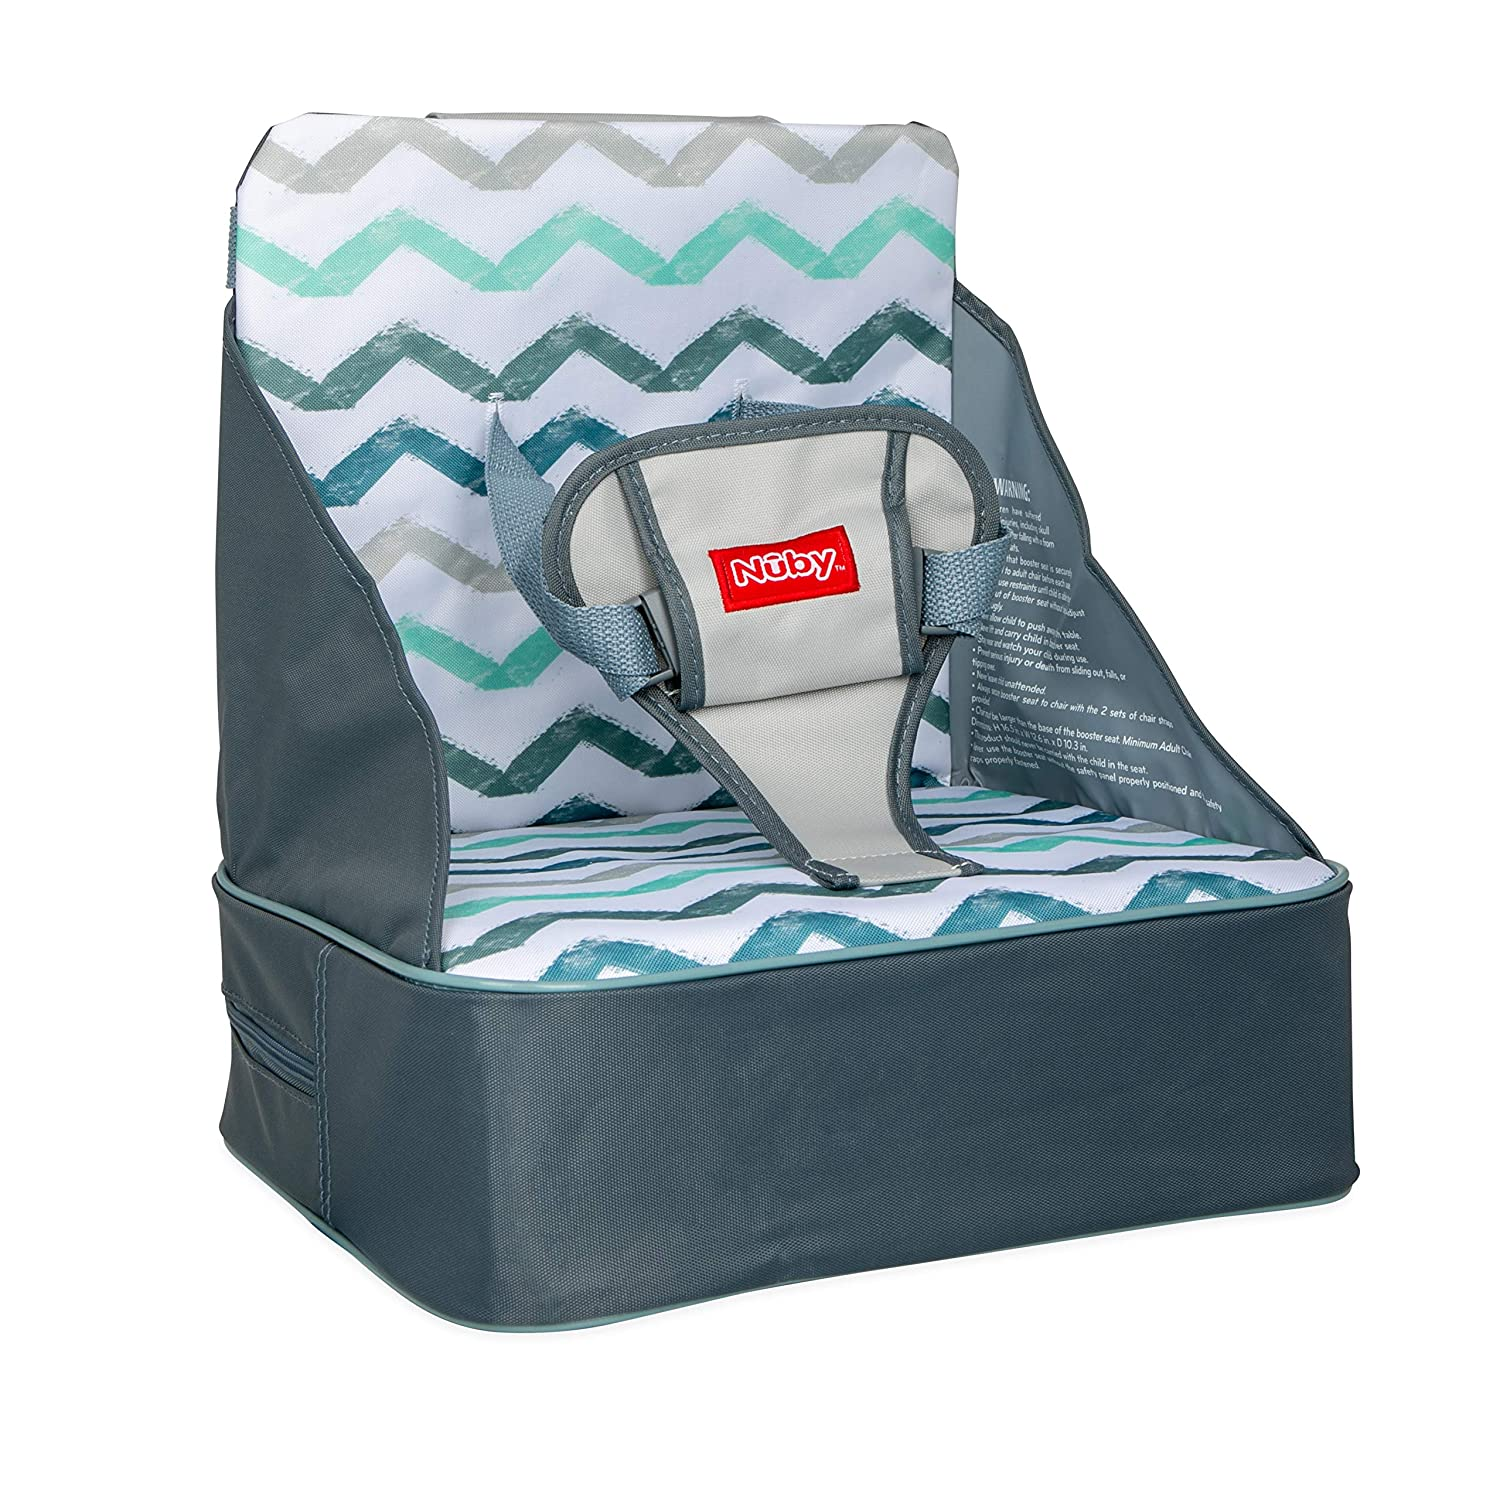 Nuby Easy Go Miami Mall Safety Lightweight High Chair Great Ranking TOP17 f Booster Seat